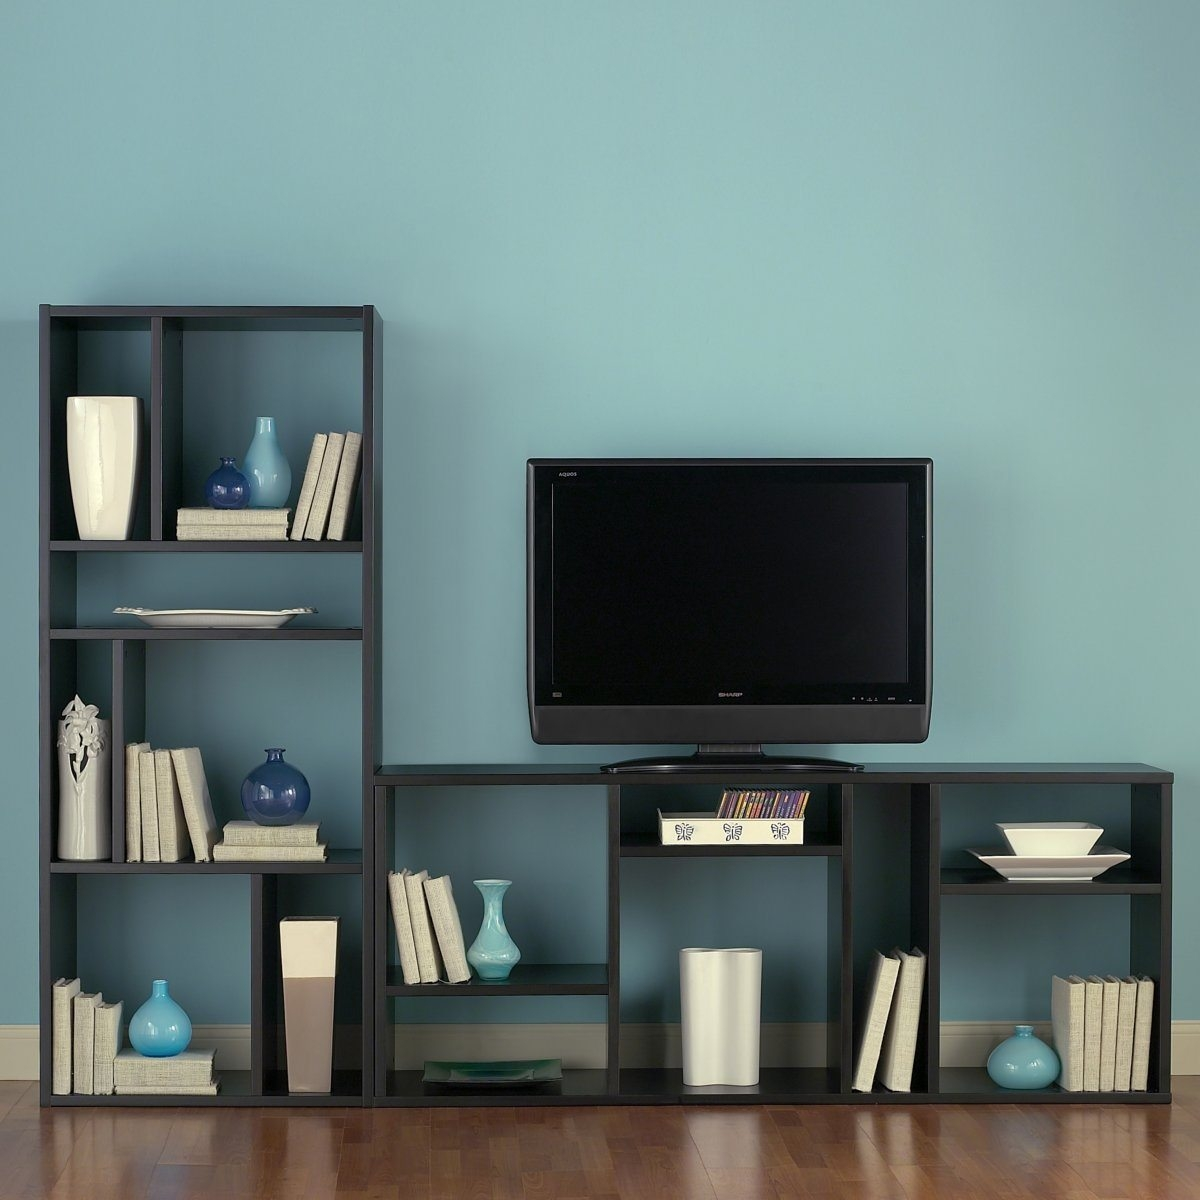 Tv Stand With Bookshelves Idi Design With Regard To Tv Bookshelves (#13 of 15)